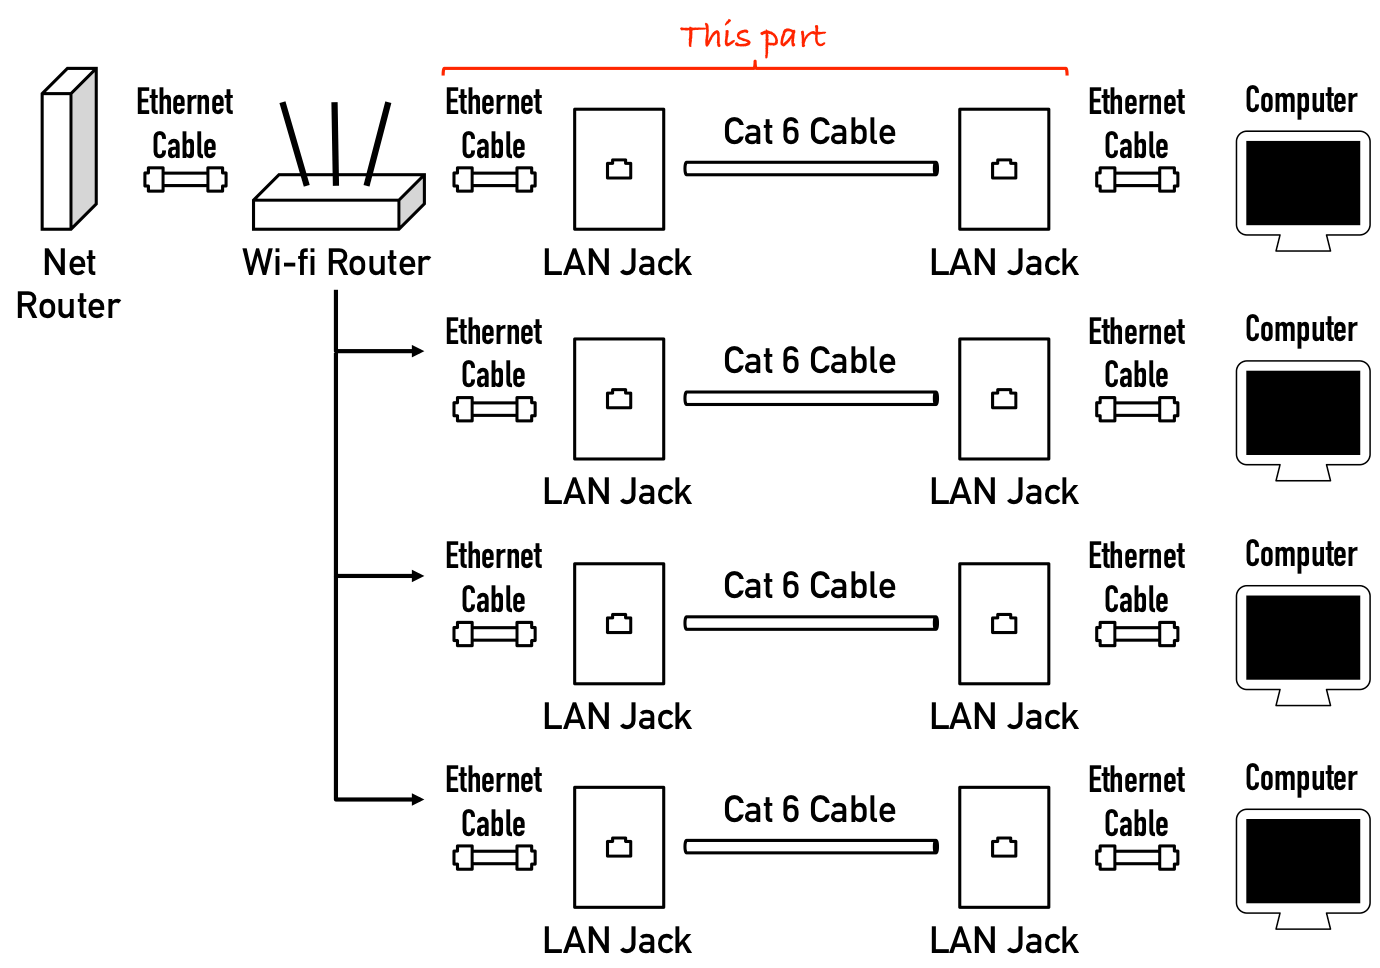 hight resolution of cabling how do i run wired internet from a single router to phone jack wiring diagram moreover self contained room designs on